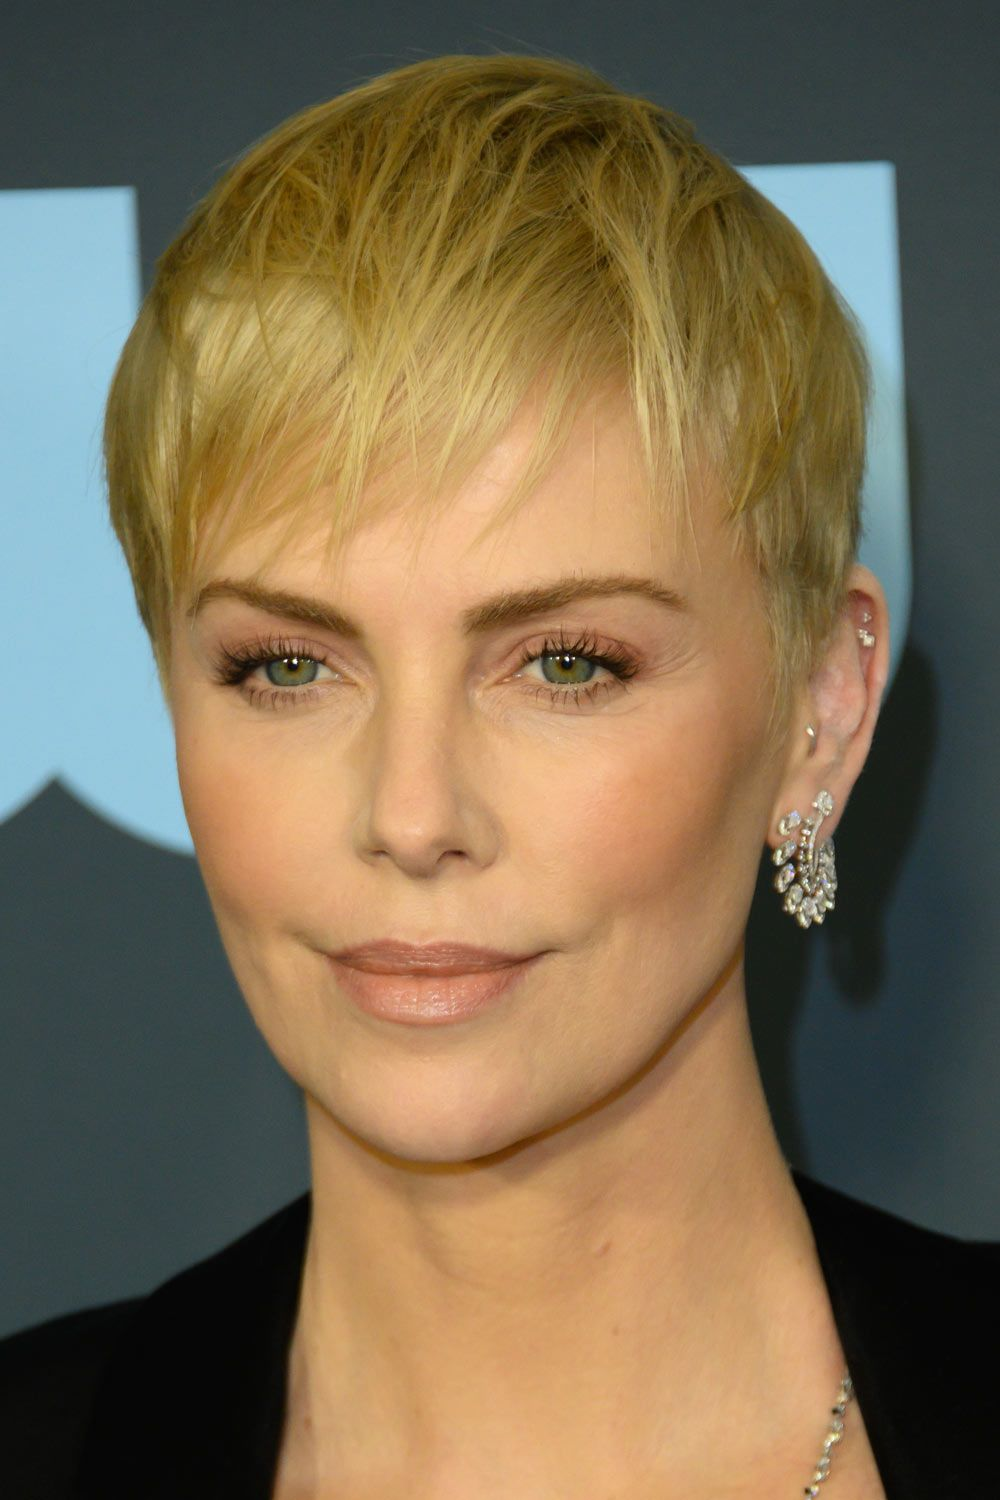 Blonde Pixie Cut For Charlize Theron